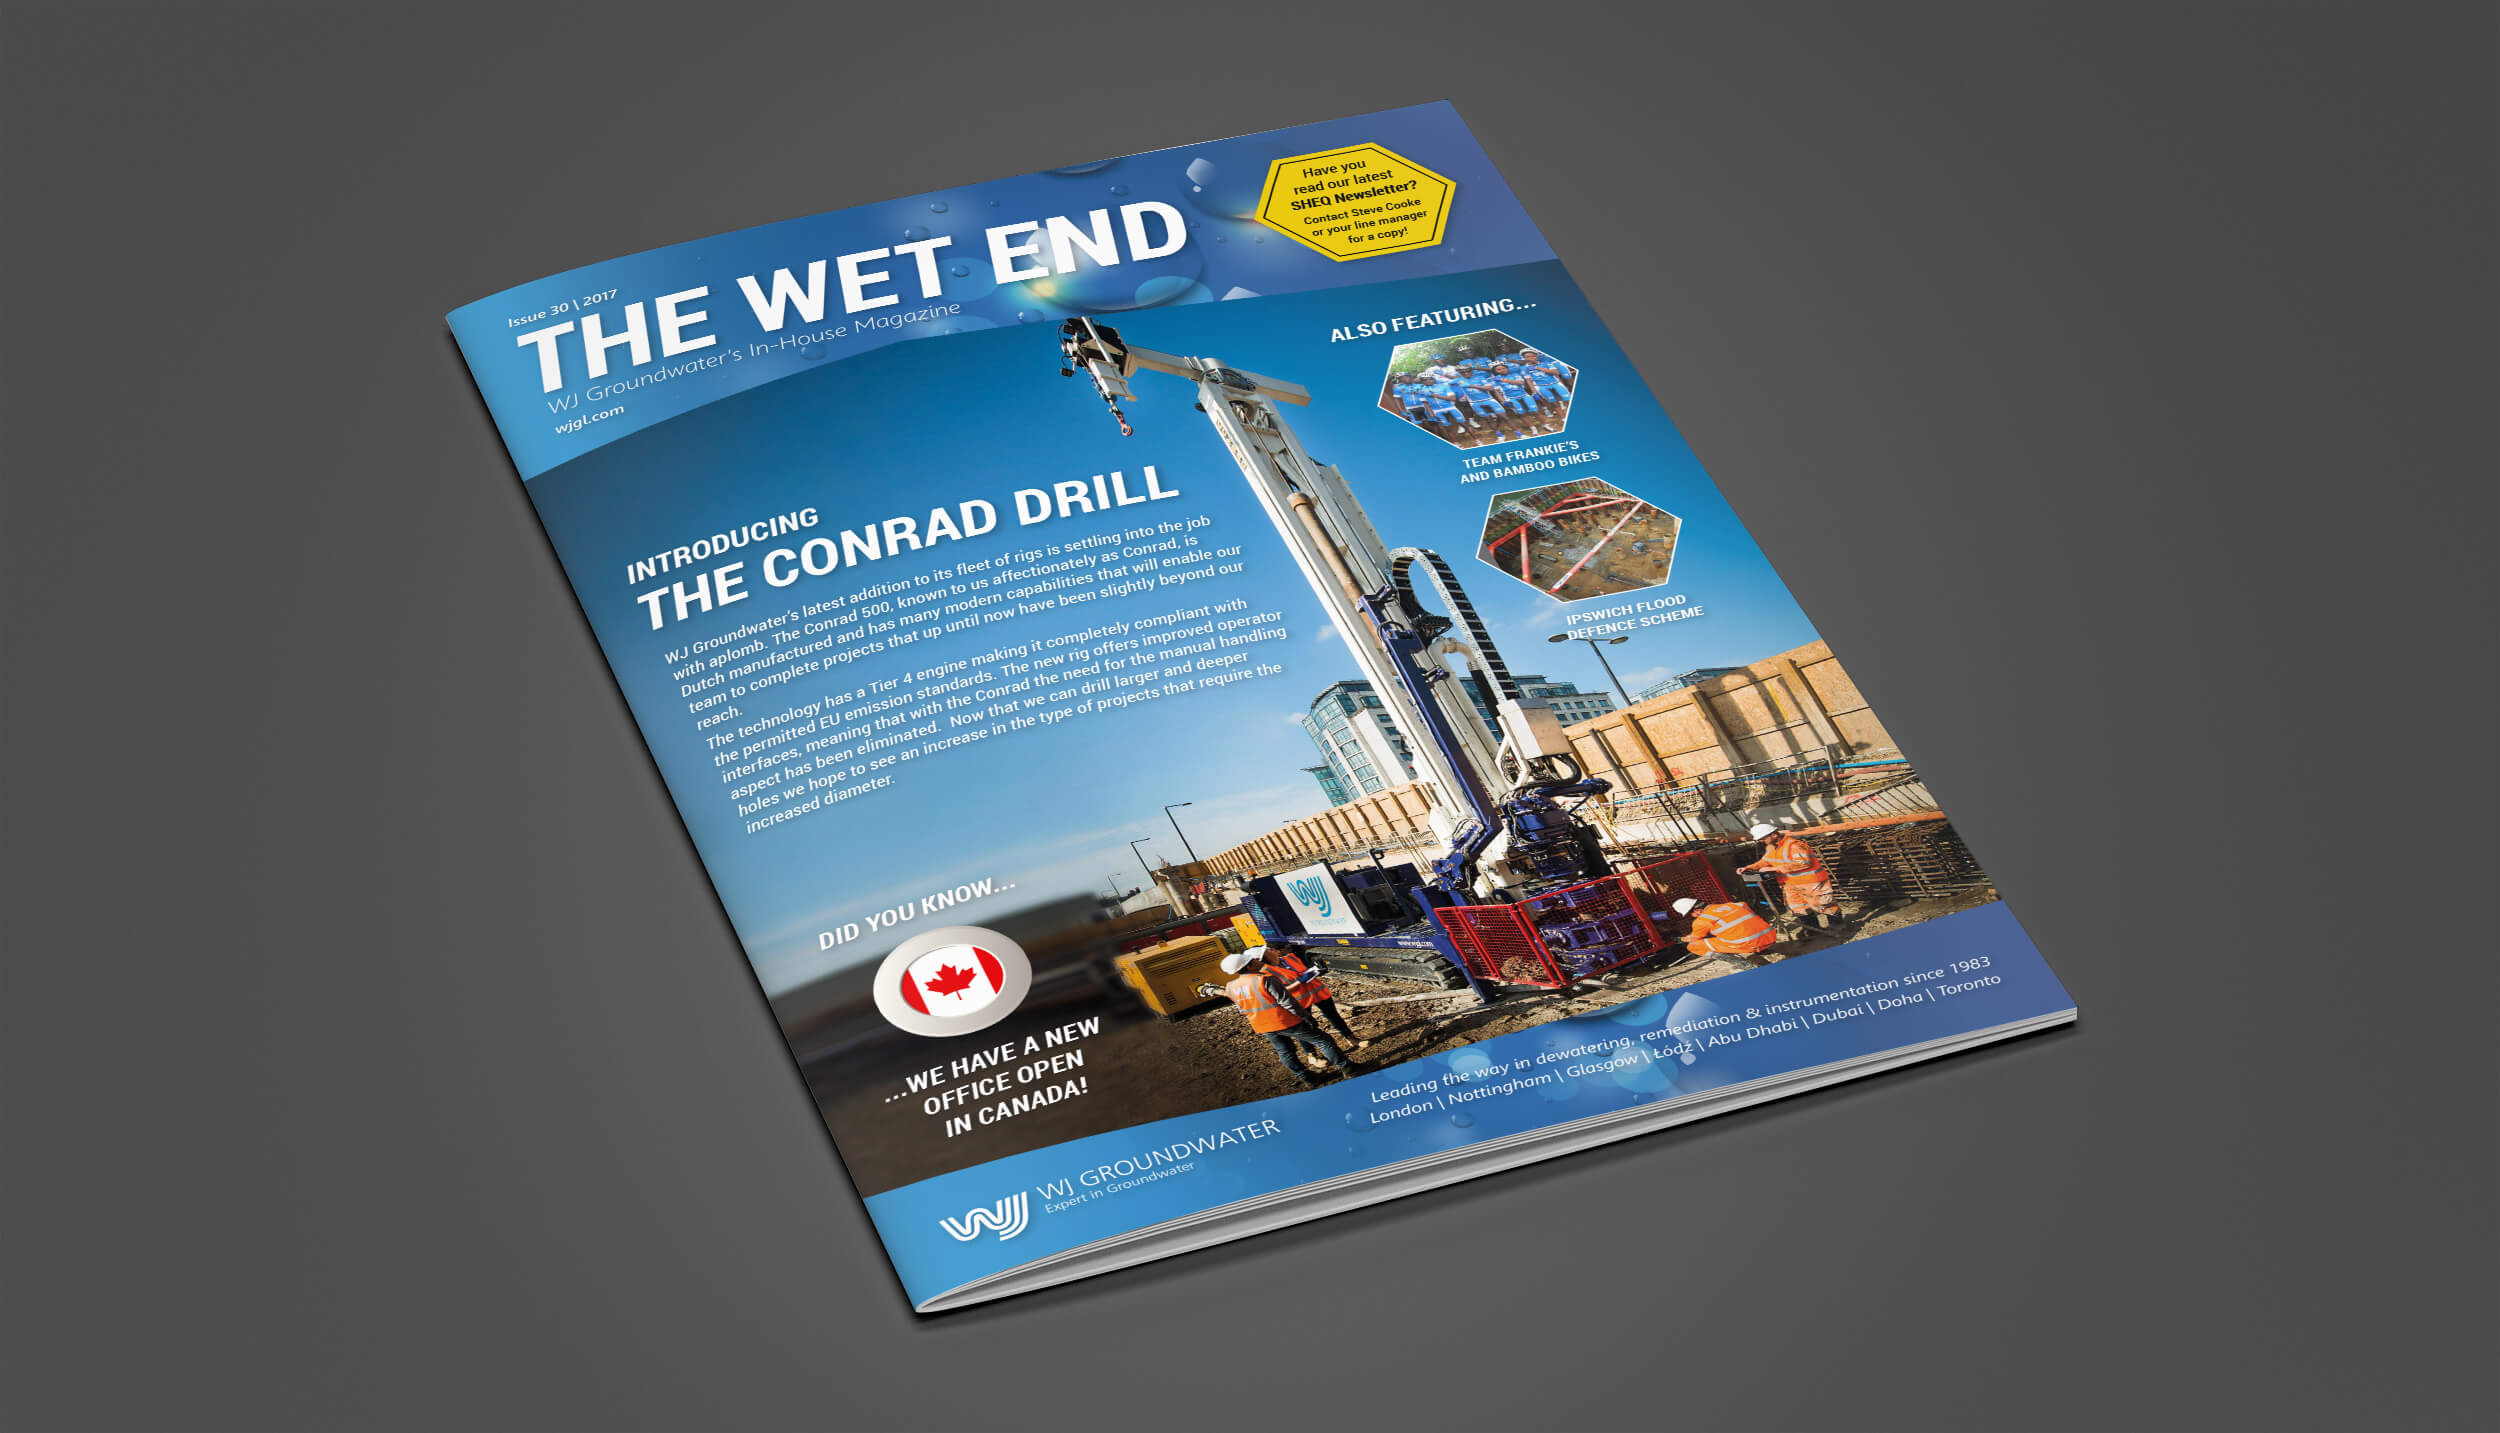 The Wet End - Issue 30 Front cover